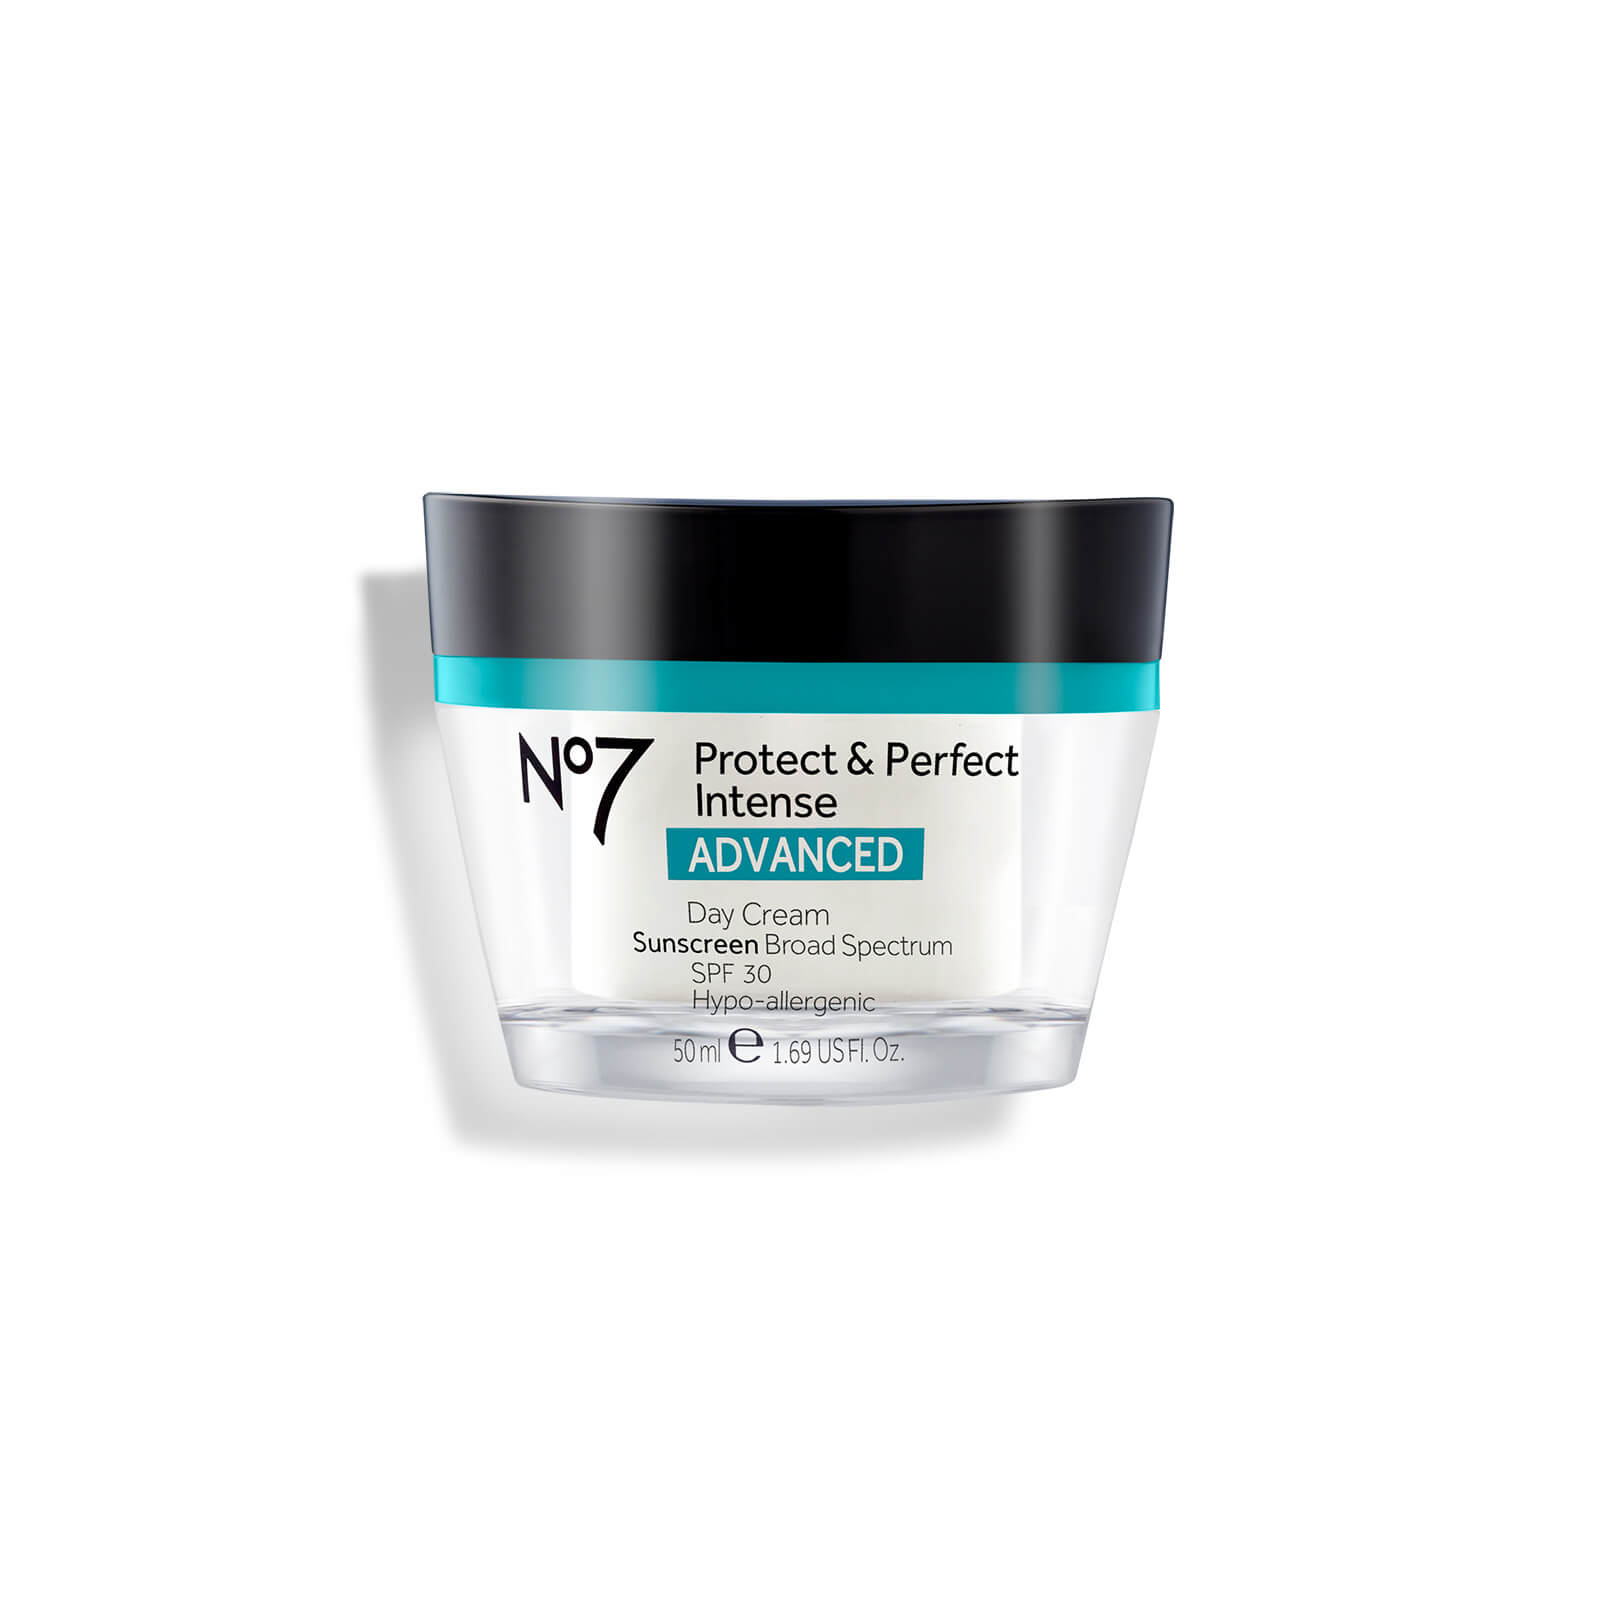 701b28ab59c64 Boots No.7 Protect and Perfect Intense ADVANCED Day Cream SPF 30 | SkinStore